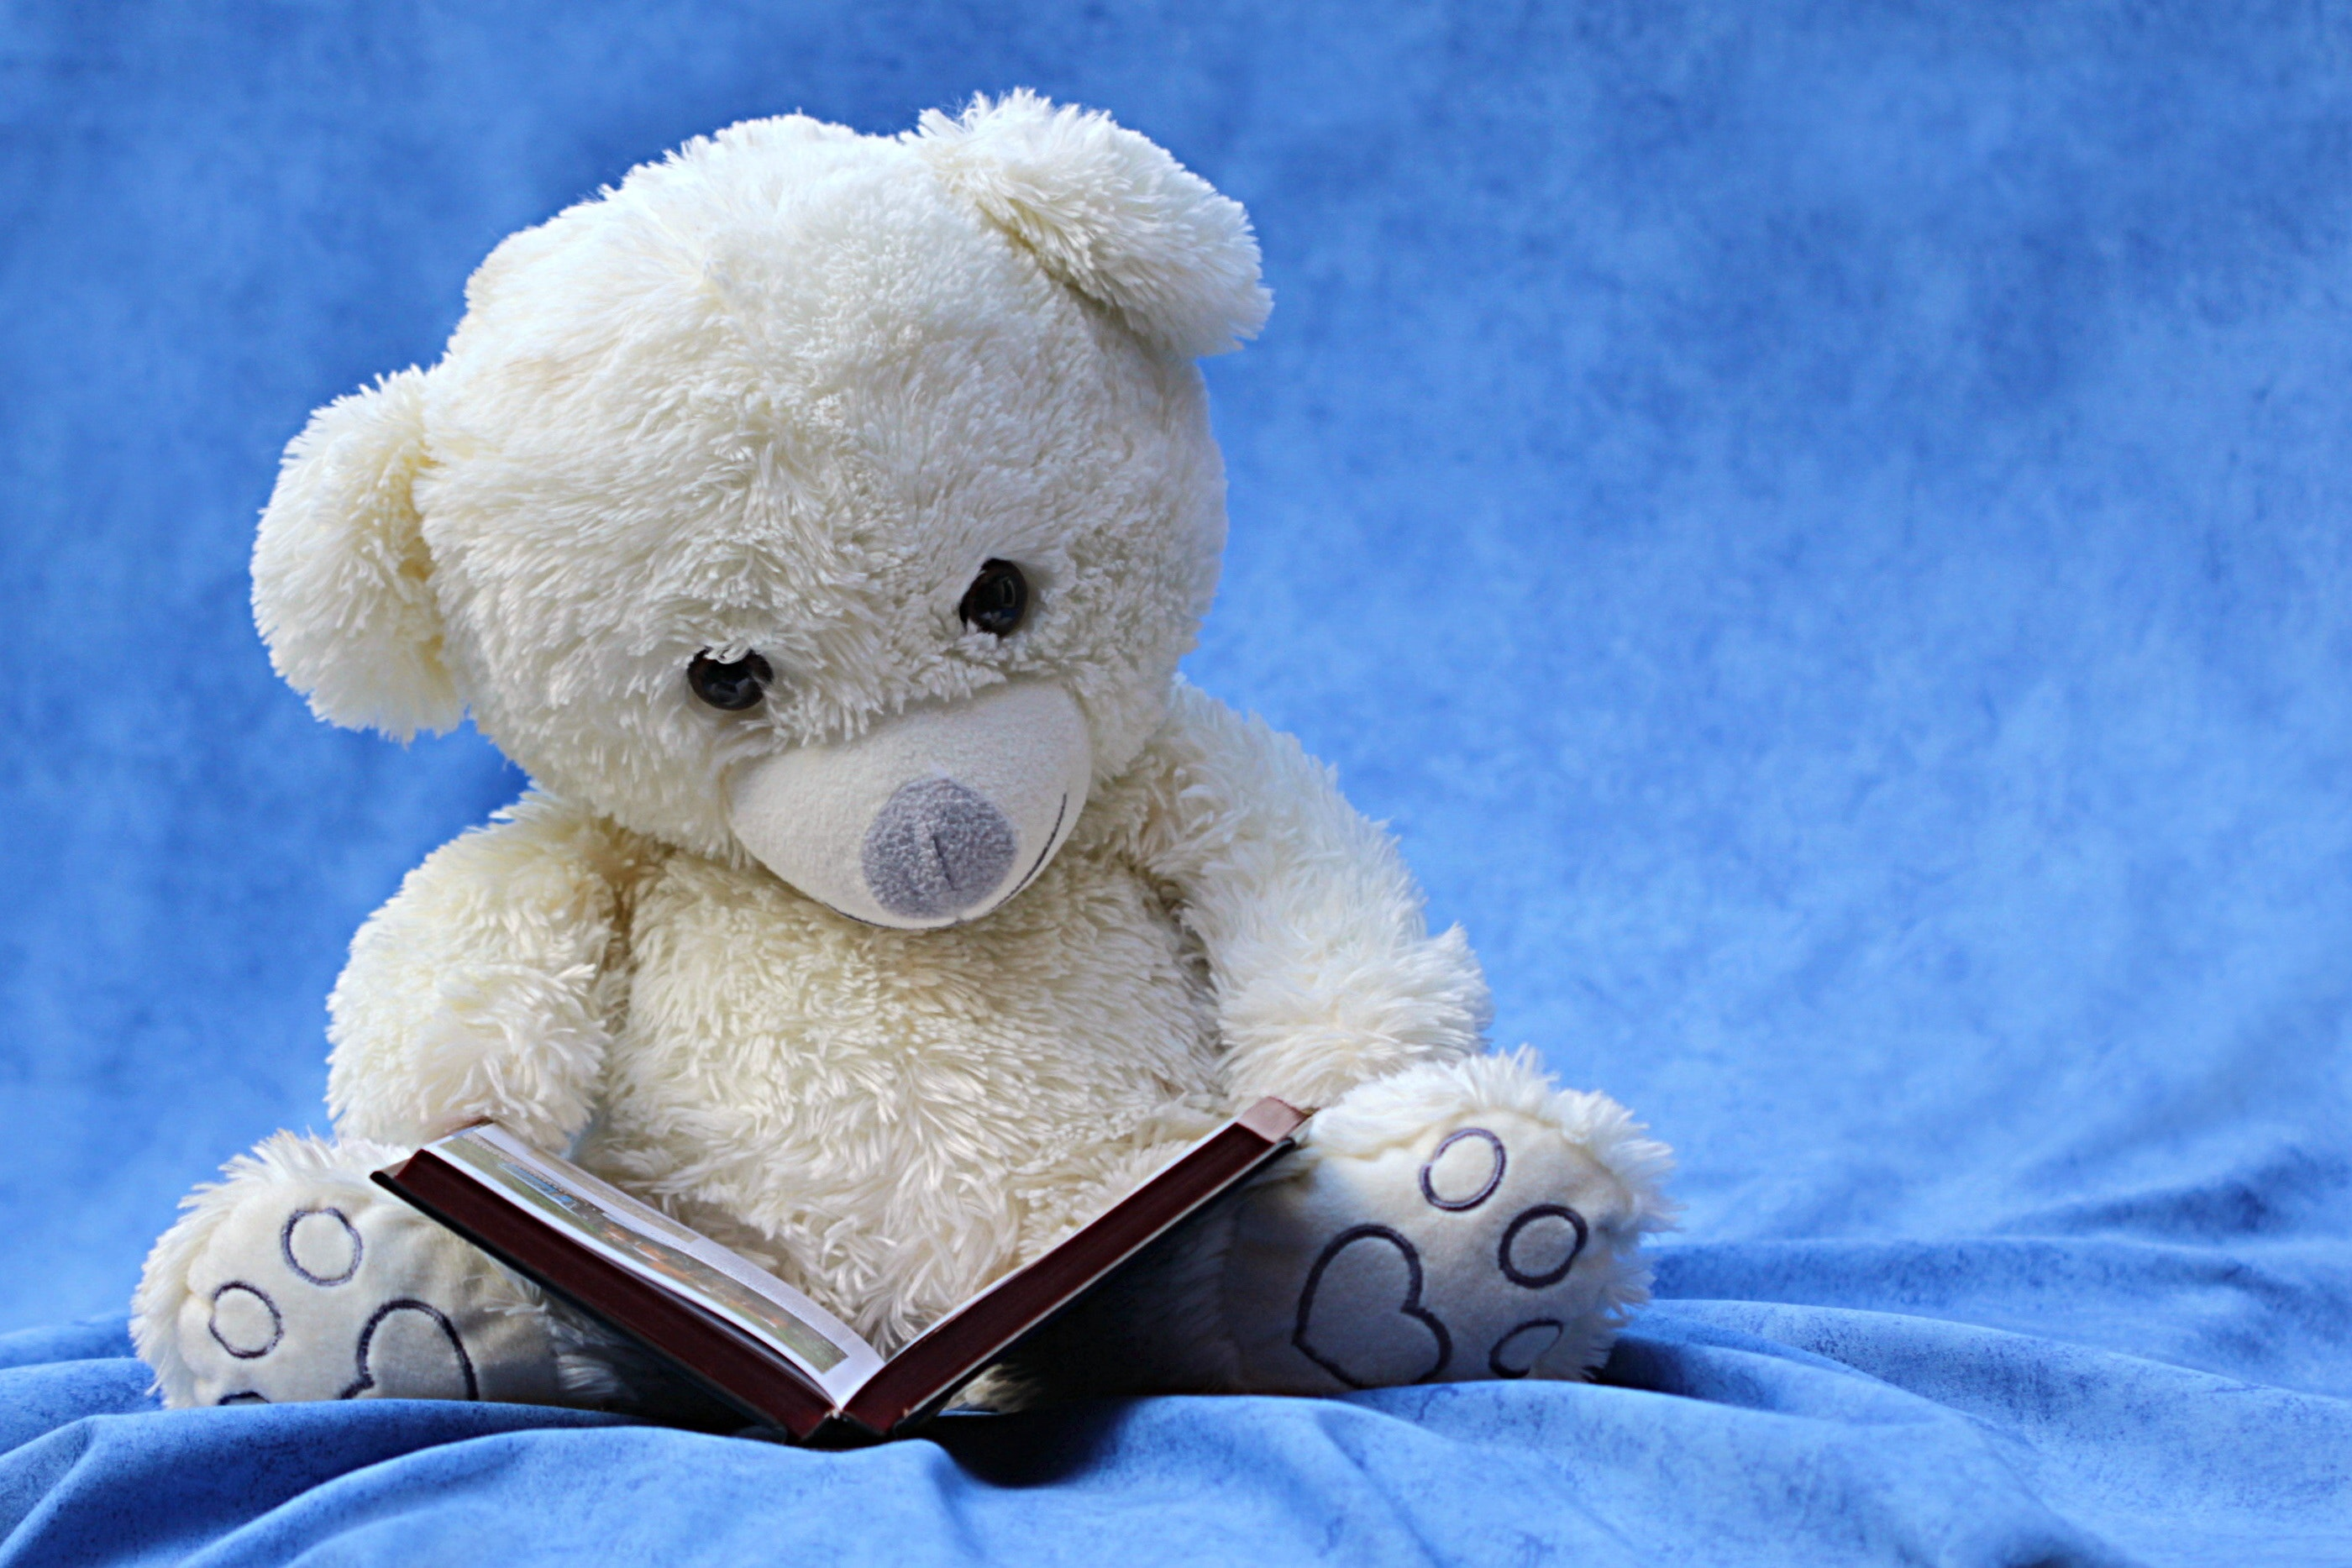 A white teddy bear reading a book against a blue background.